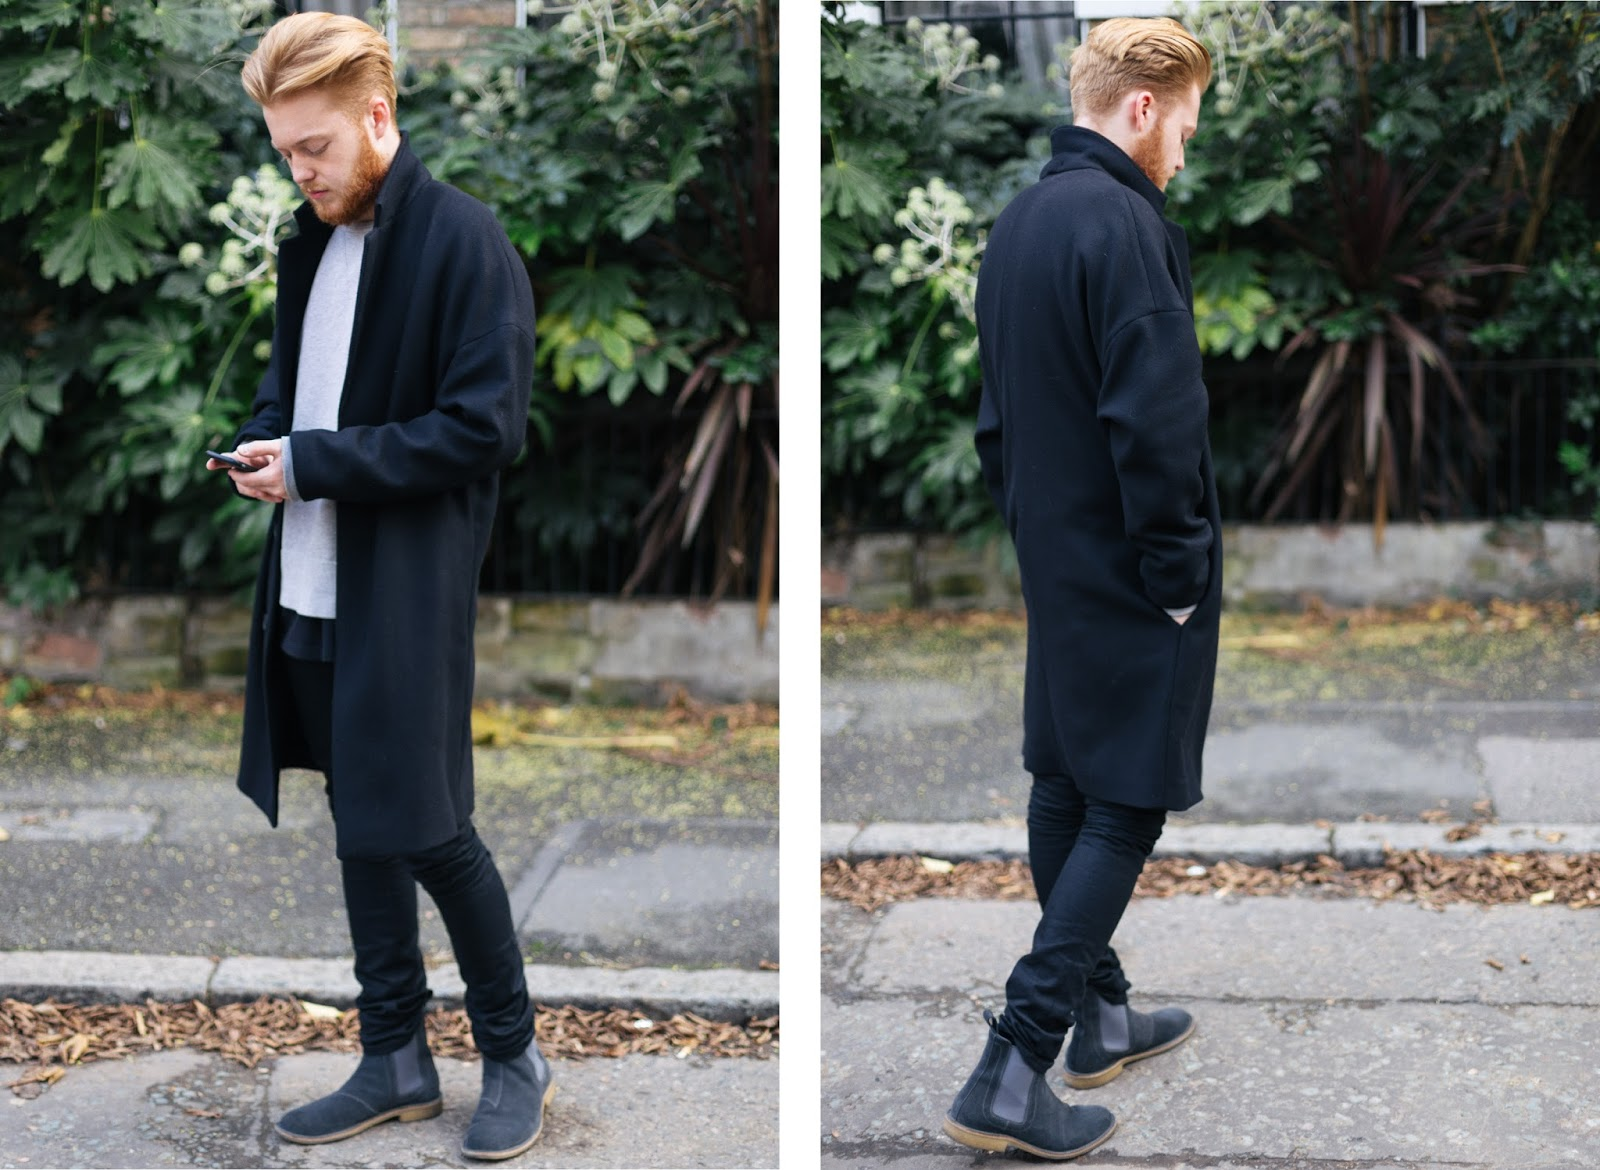 The Oversized Overcoat | Jude J Taylor | Men's Fashion & Lifestyle